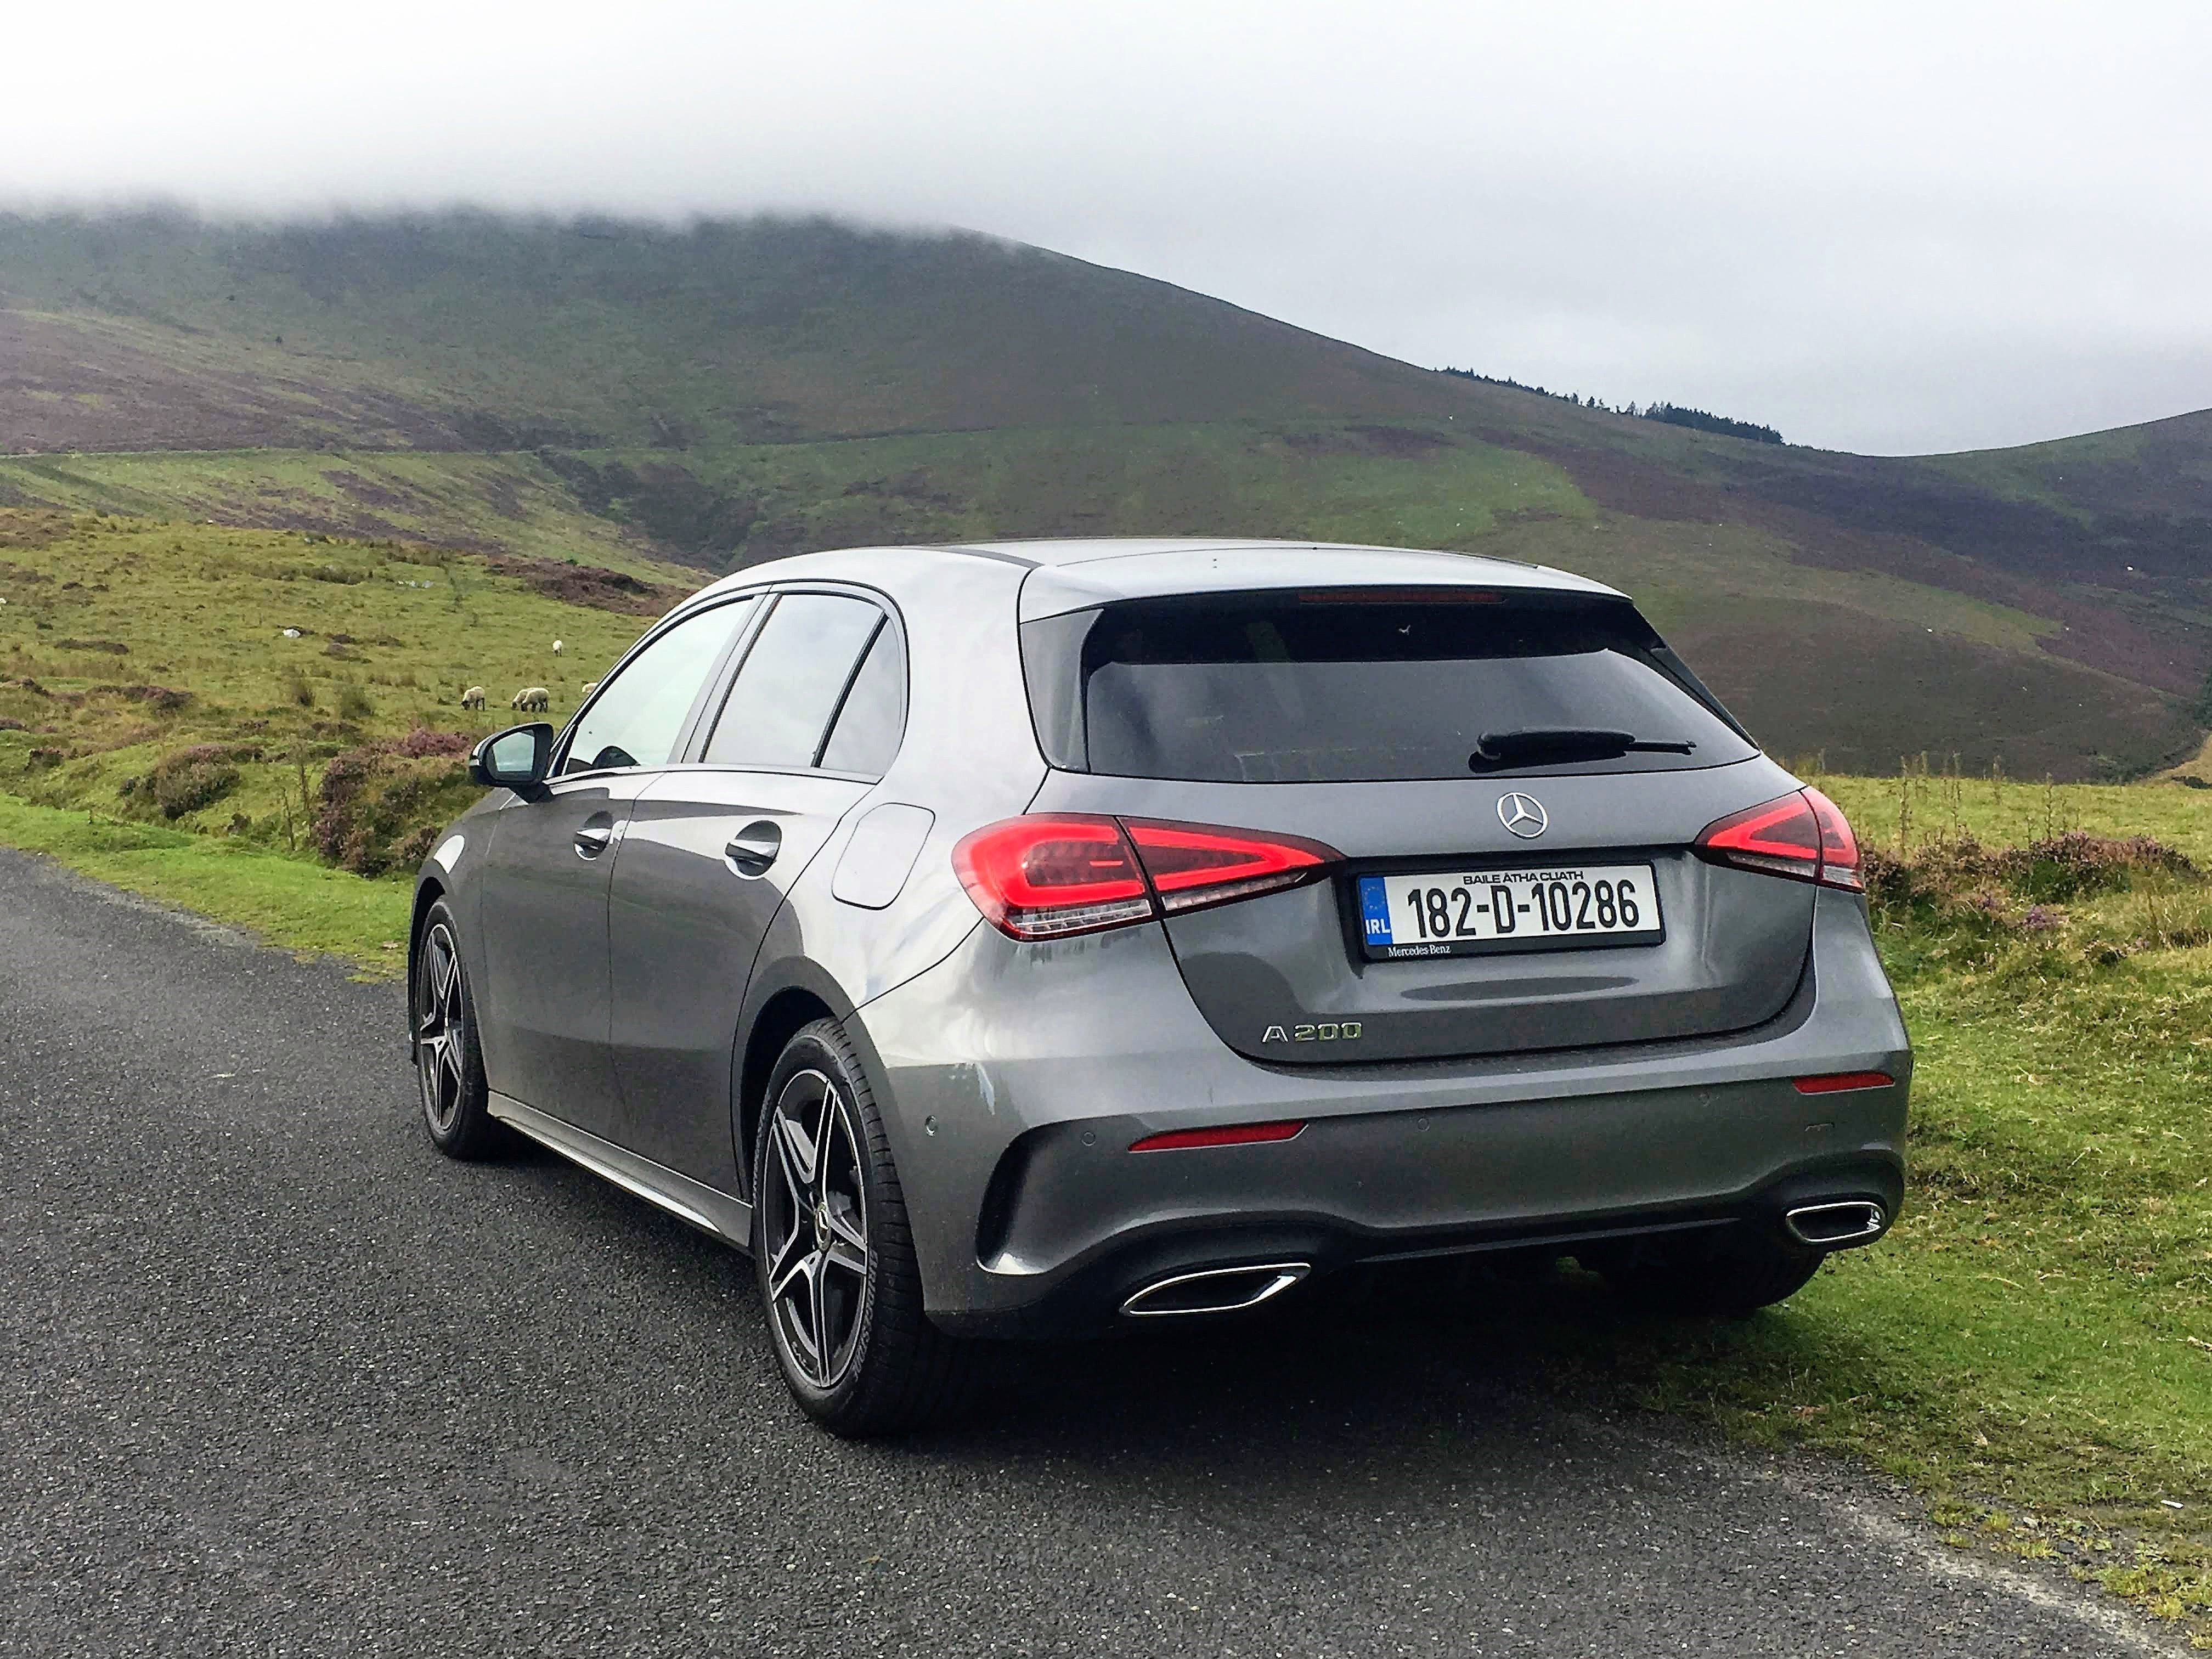 The Mercedes-Benz A-Class range starts from €31,600 in Ireland